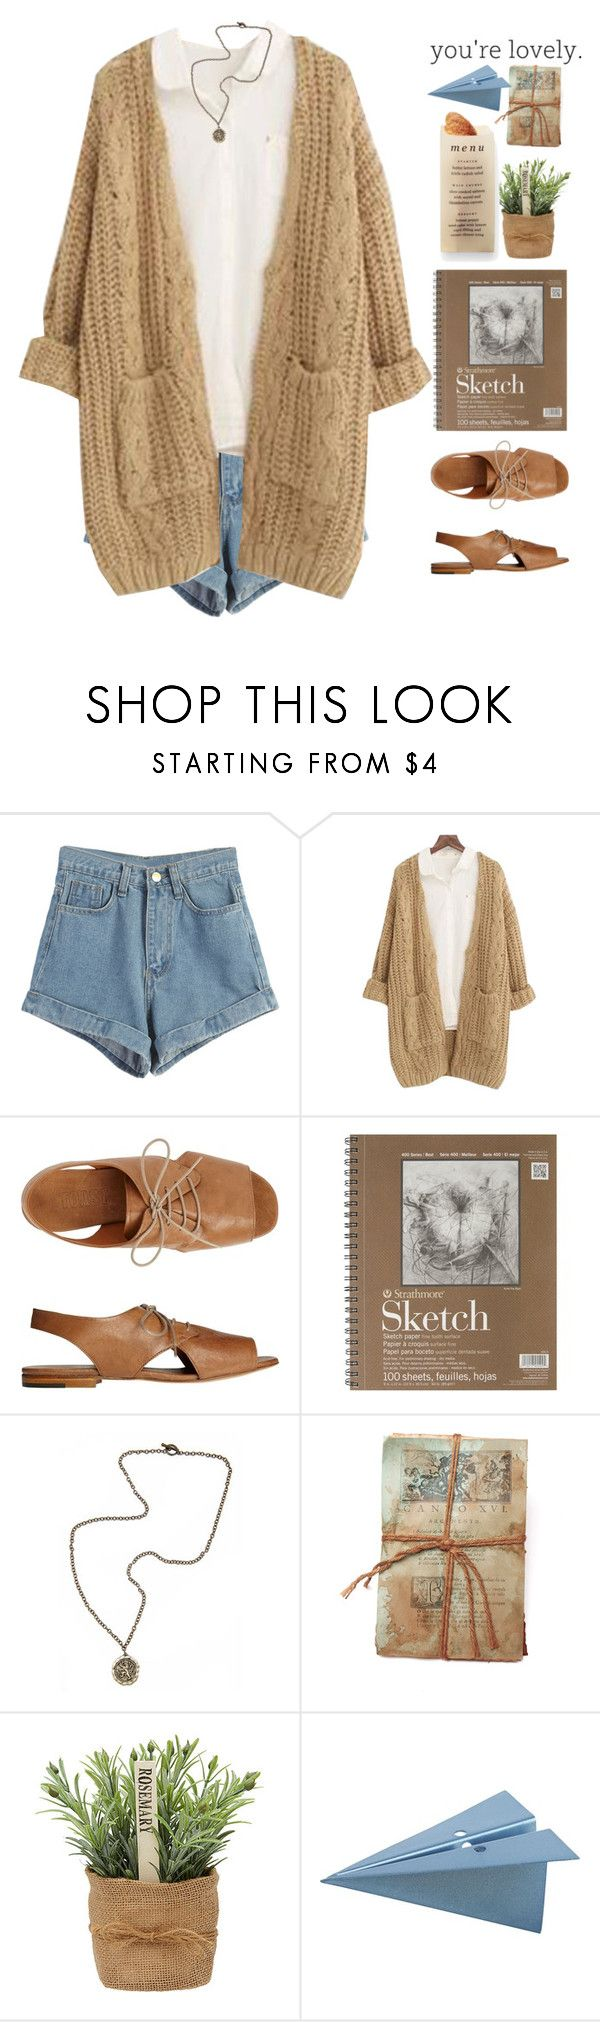 """""""Silbermond-Leichtes Gepäck"""" by holunderbluete ❤ liked on Polyvore featuring WithChic, Chicnova Fashion, Toast, French Kande, GO Home Ltd., Martha Stewart, CB2, women's clothing, women's fashion and women"""